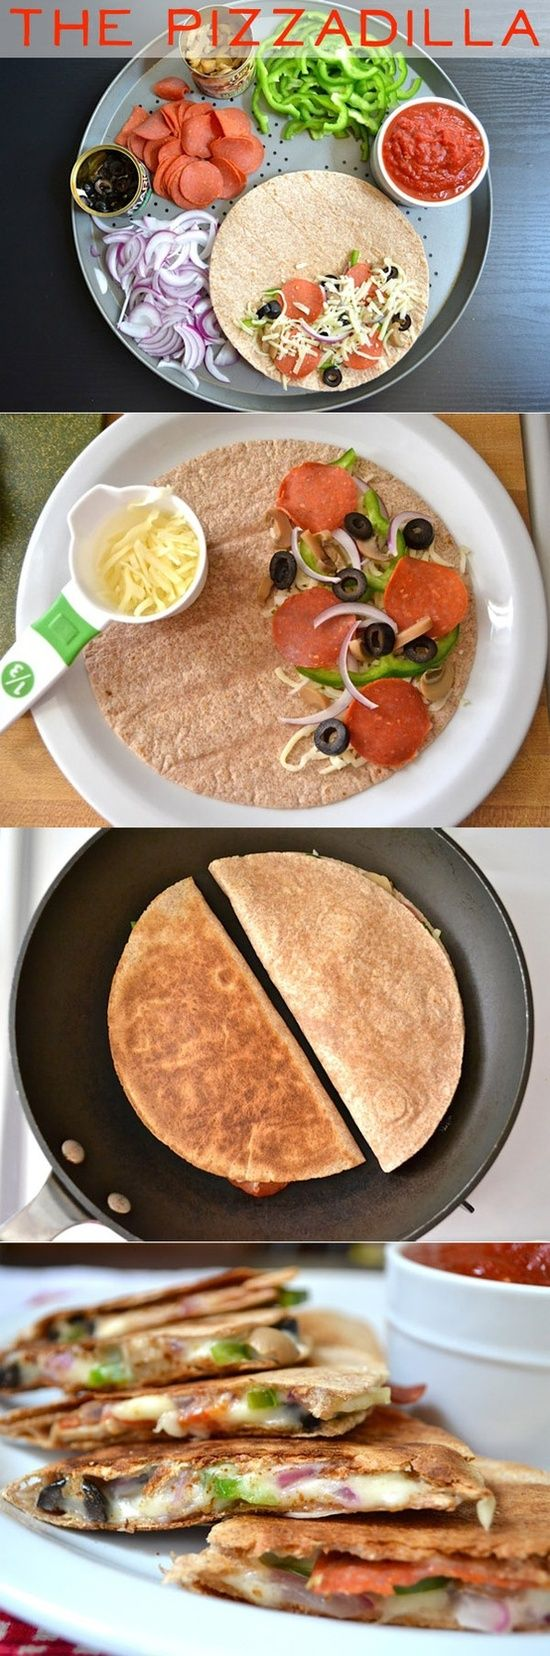 Pizzadillas - healthy pizza option. - Click image to find more Food & Drink Pinterest pins